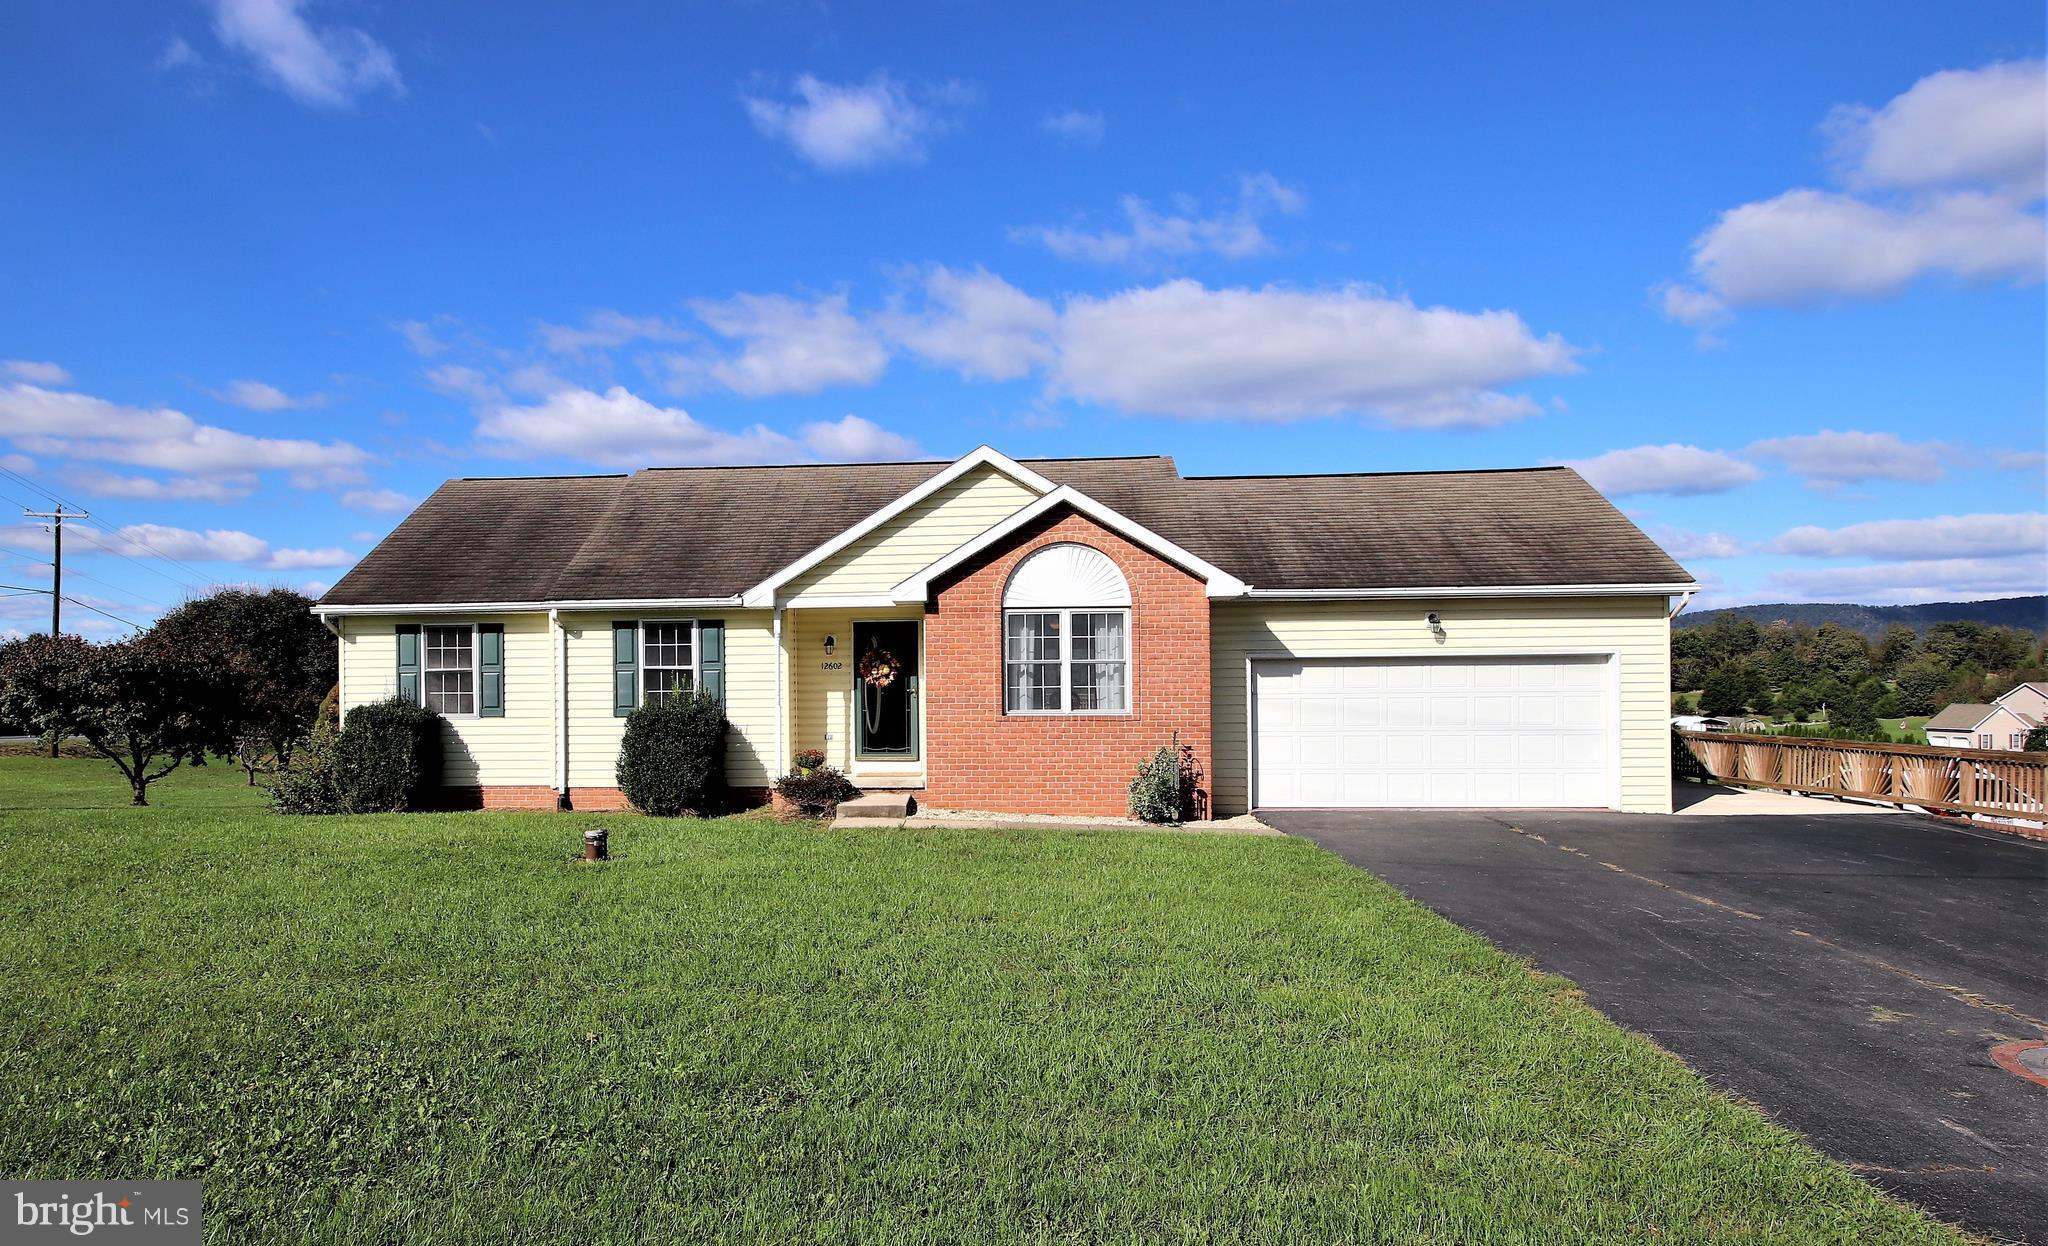 12602 KNEPPER ROAD, CLEAR SPRING, MD 21722